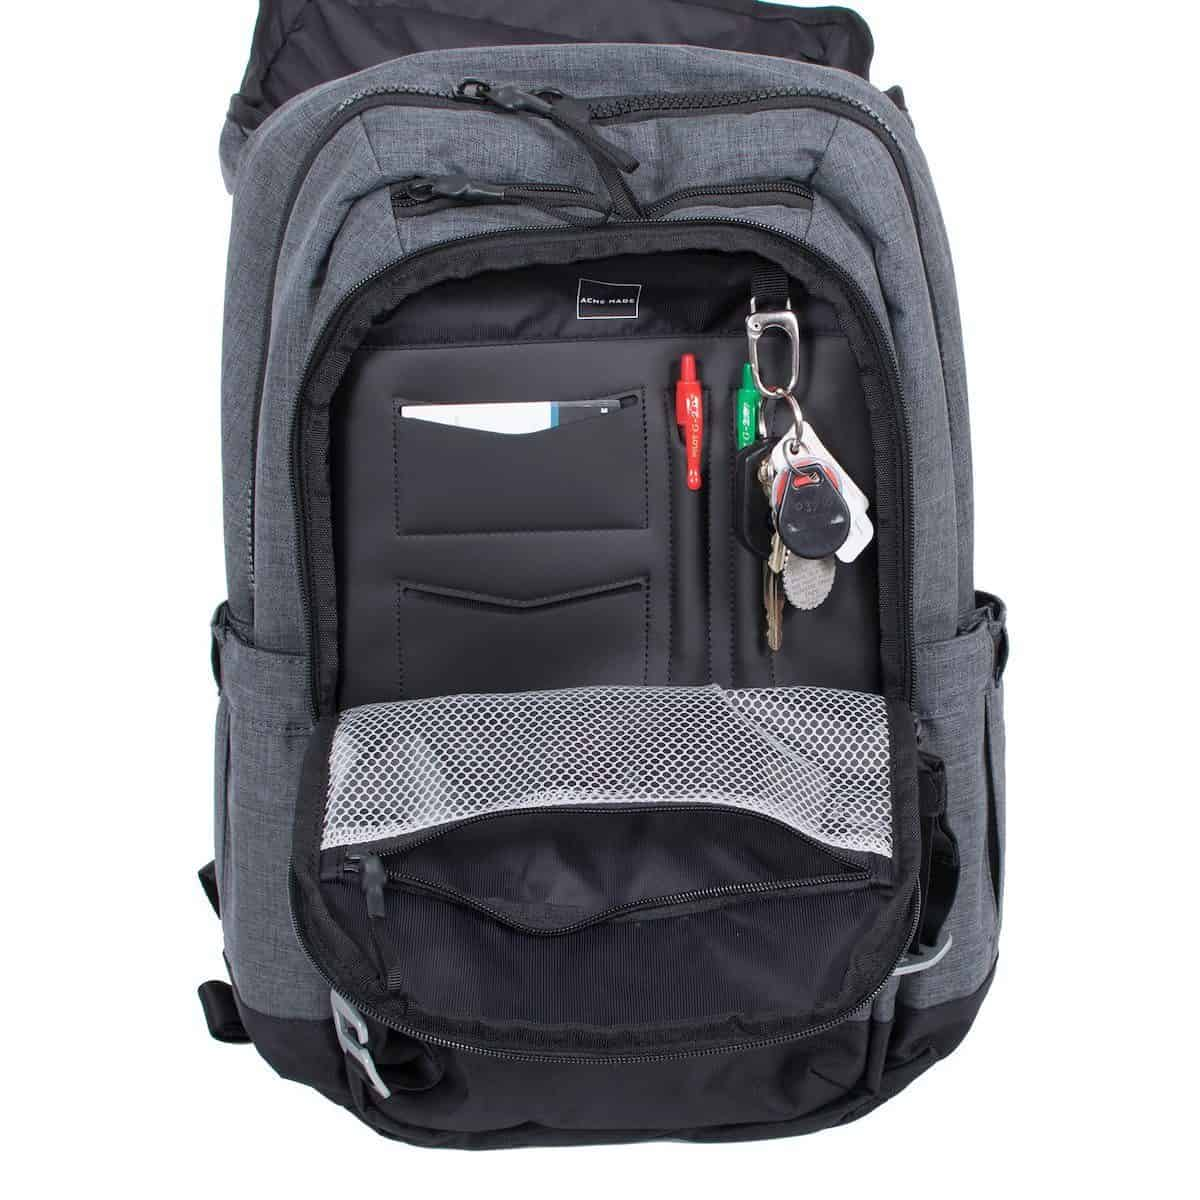 dailymom parent portal acme backpack 1 daily mom parent portal gifts for men